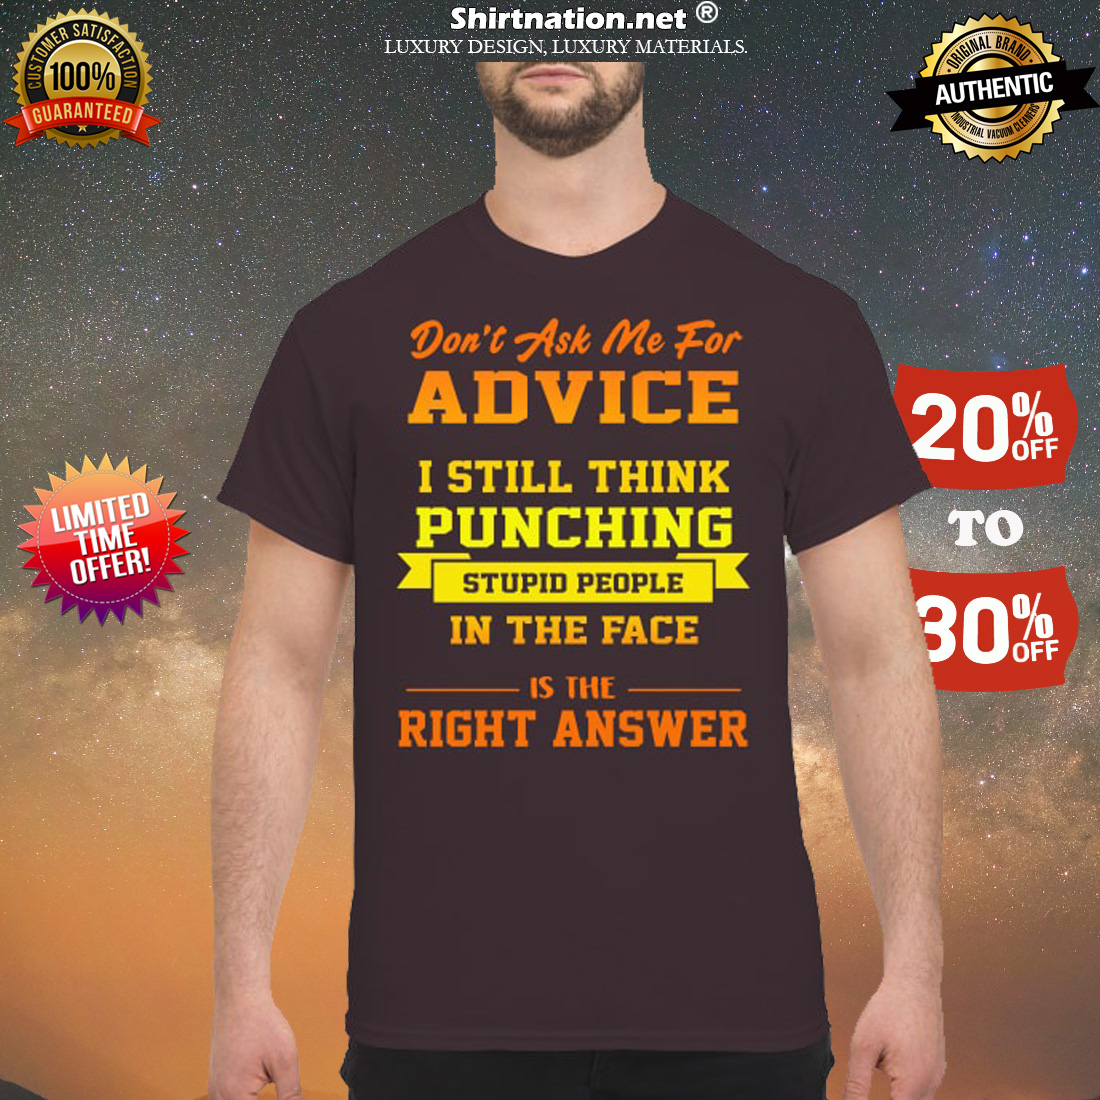 Don't ask me for advice I still think punching stupid people in the face is the right answer shirt